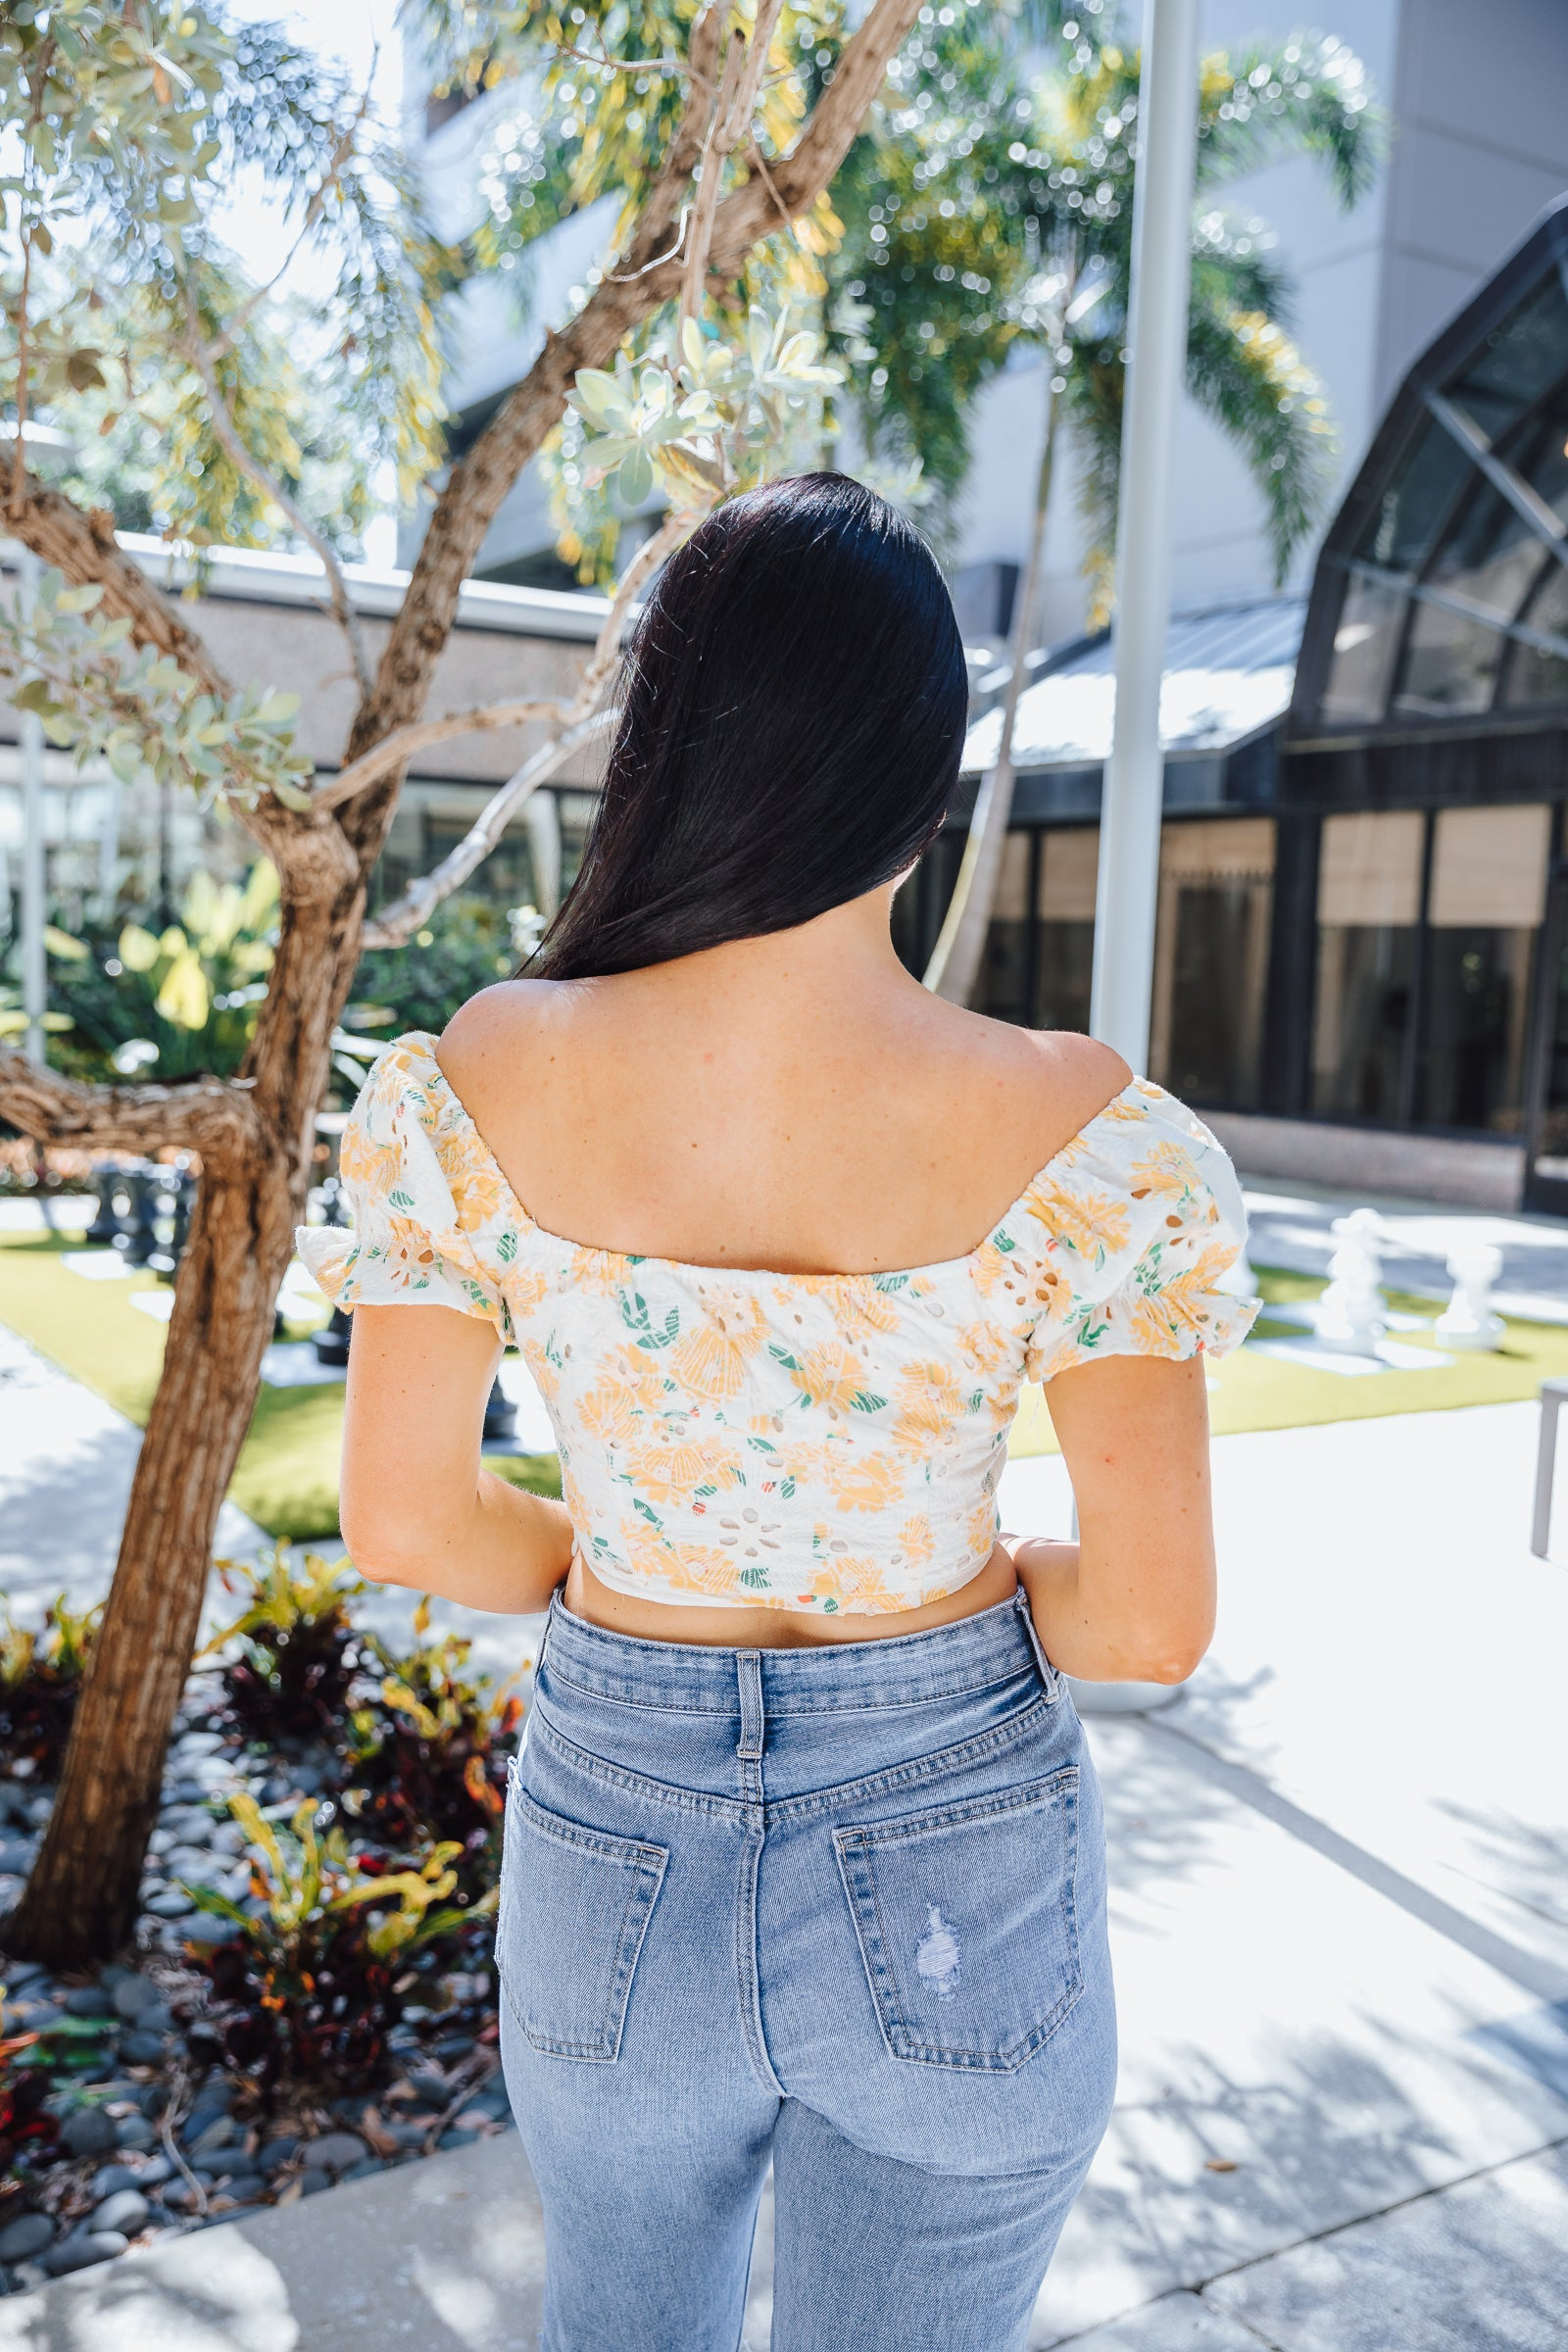 Yellow floral prints cover the eyelet fabric of this top. It has short ruffle cuffed sleeves that attach to a v-neckline with a center ruched and fitted bodice.